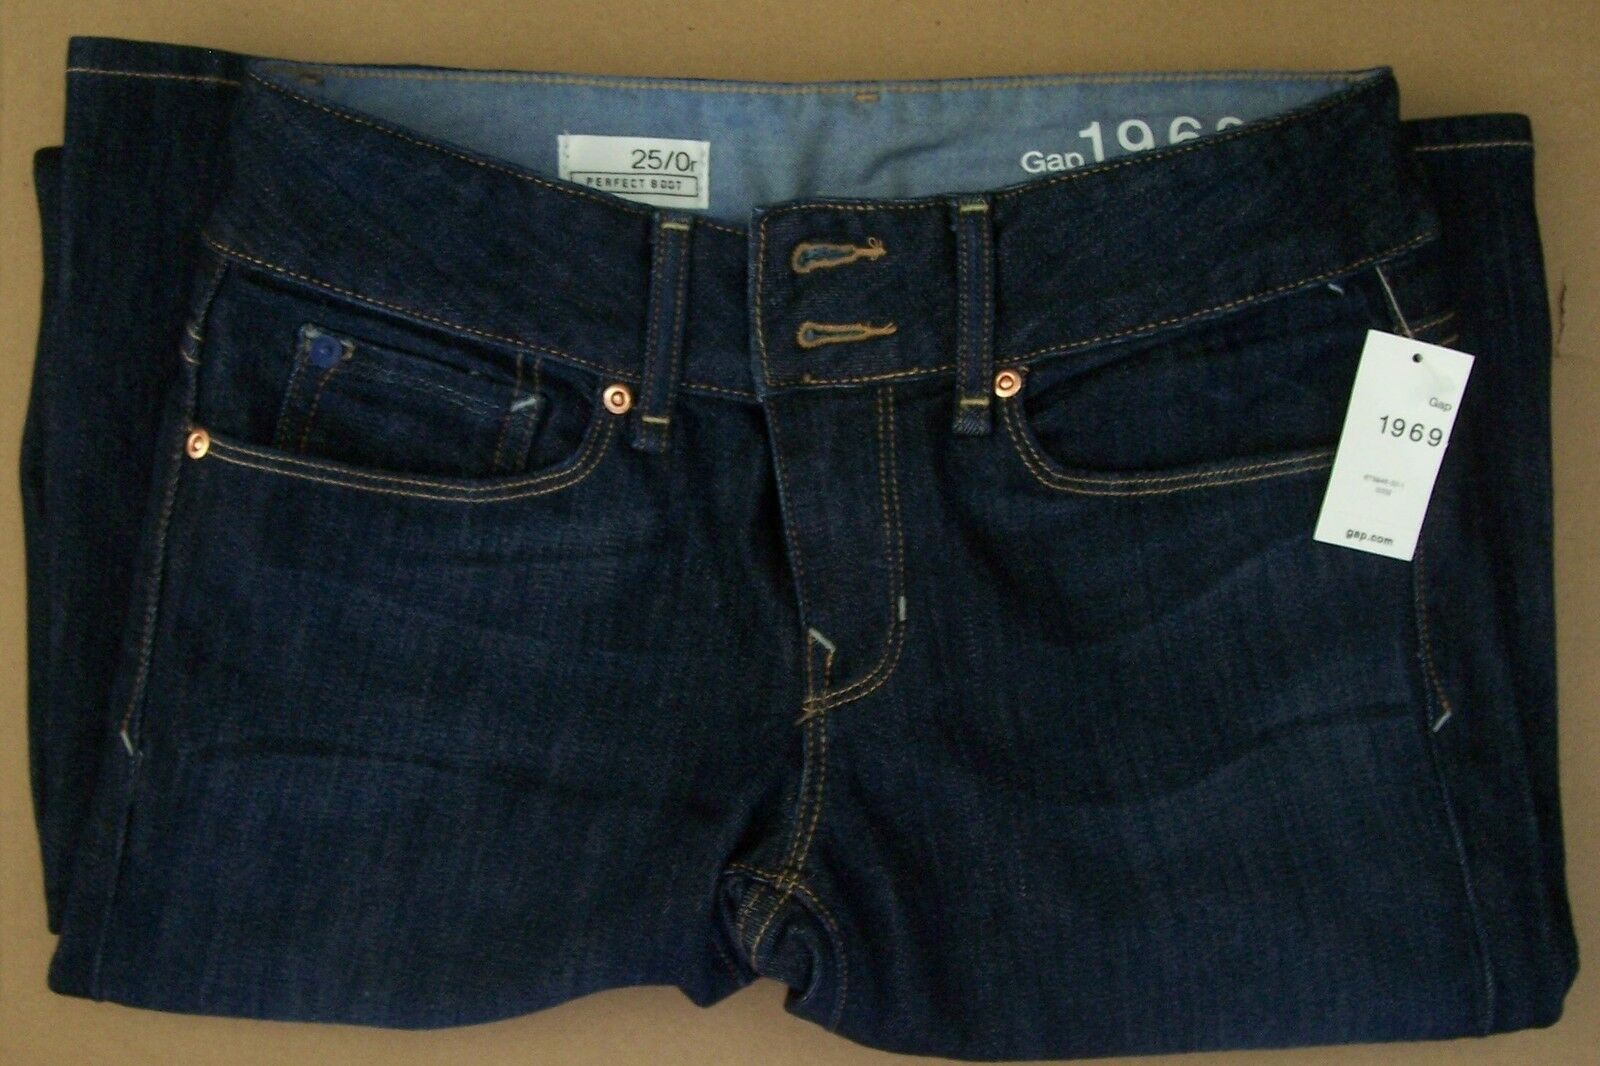 1 Pair GAP 1969 Perfect Bootcut Jeans color Dark Size 0R NWT